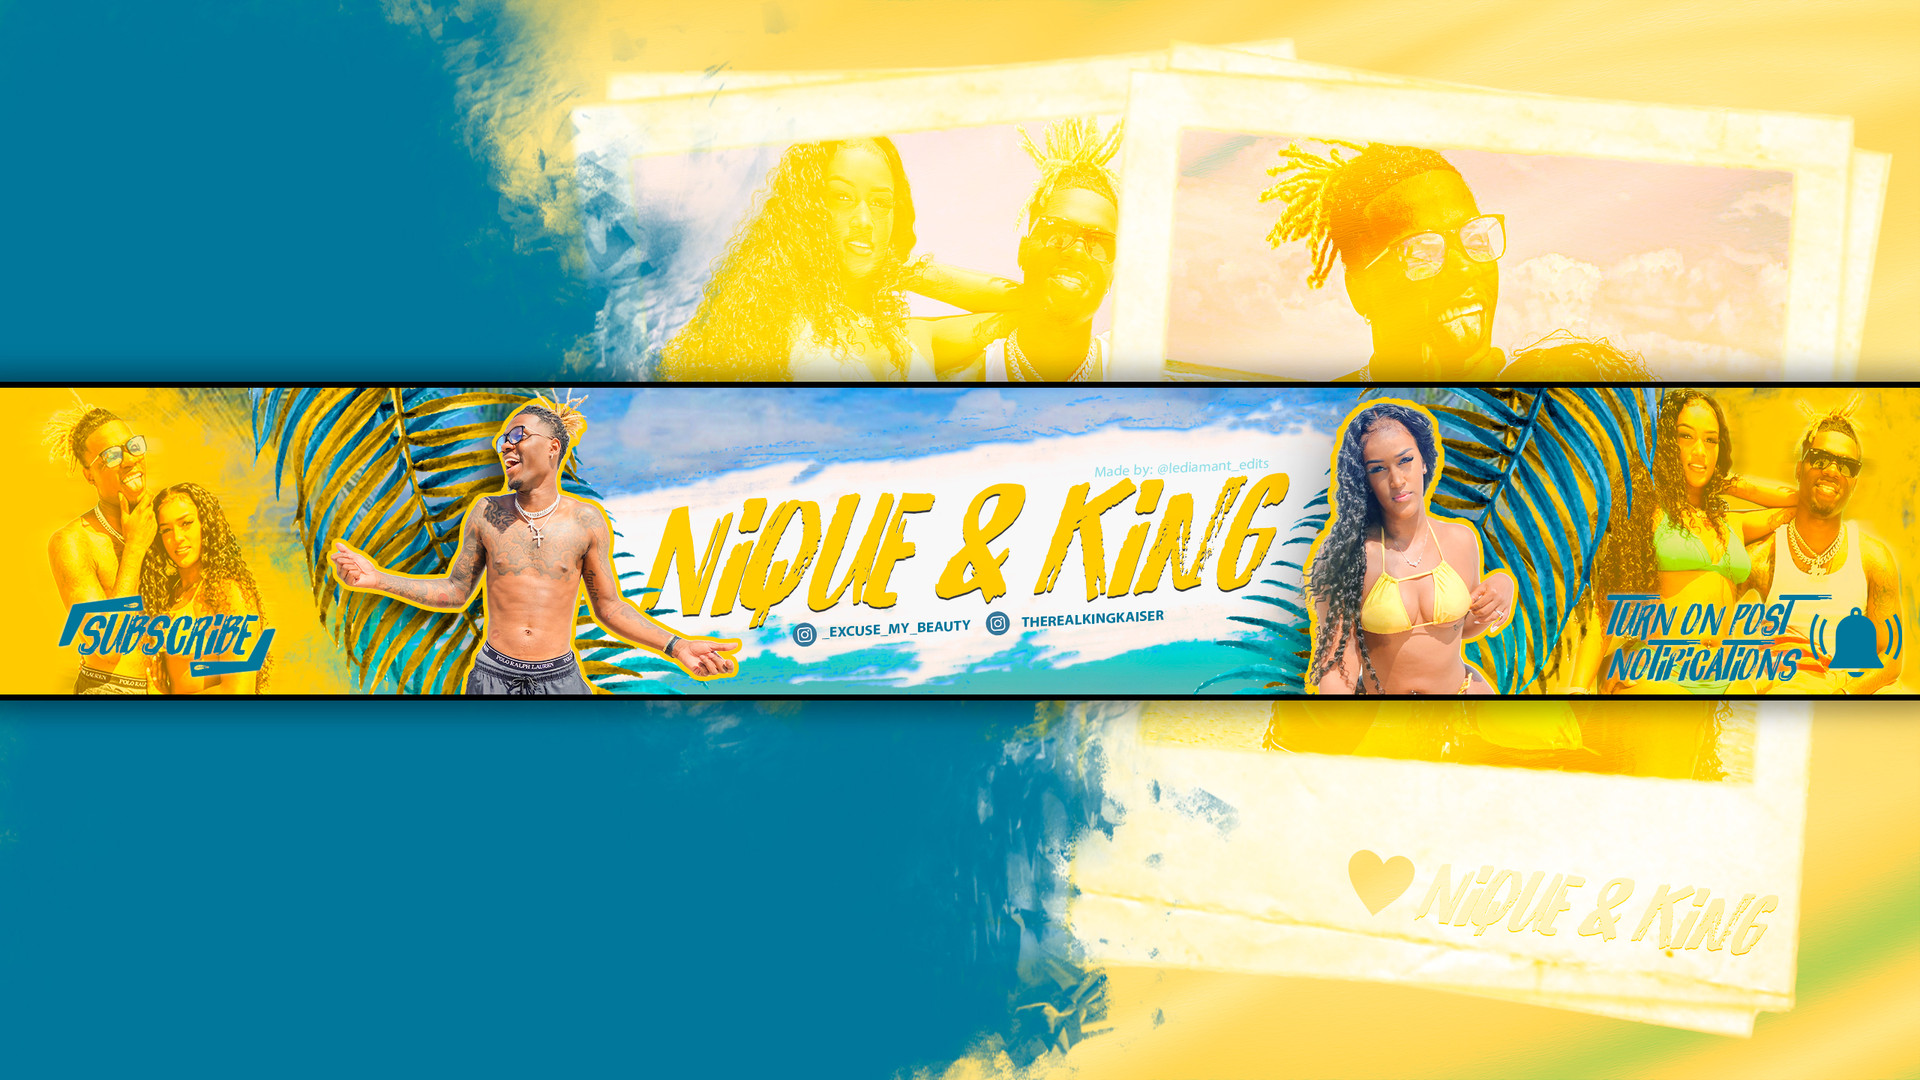 Nique-&-King-Official-Banner.jpg